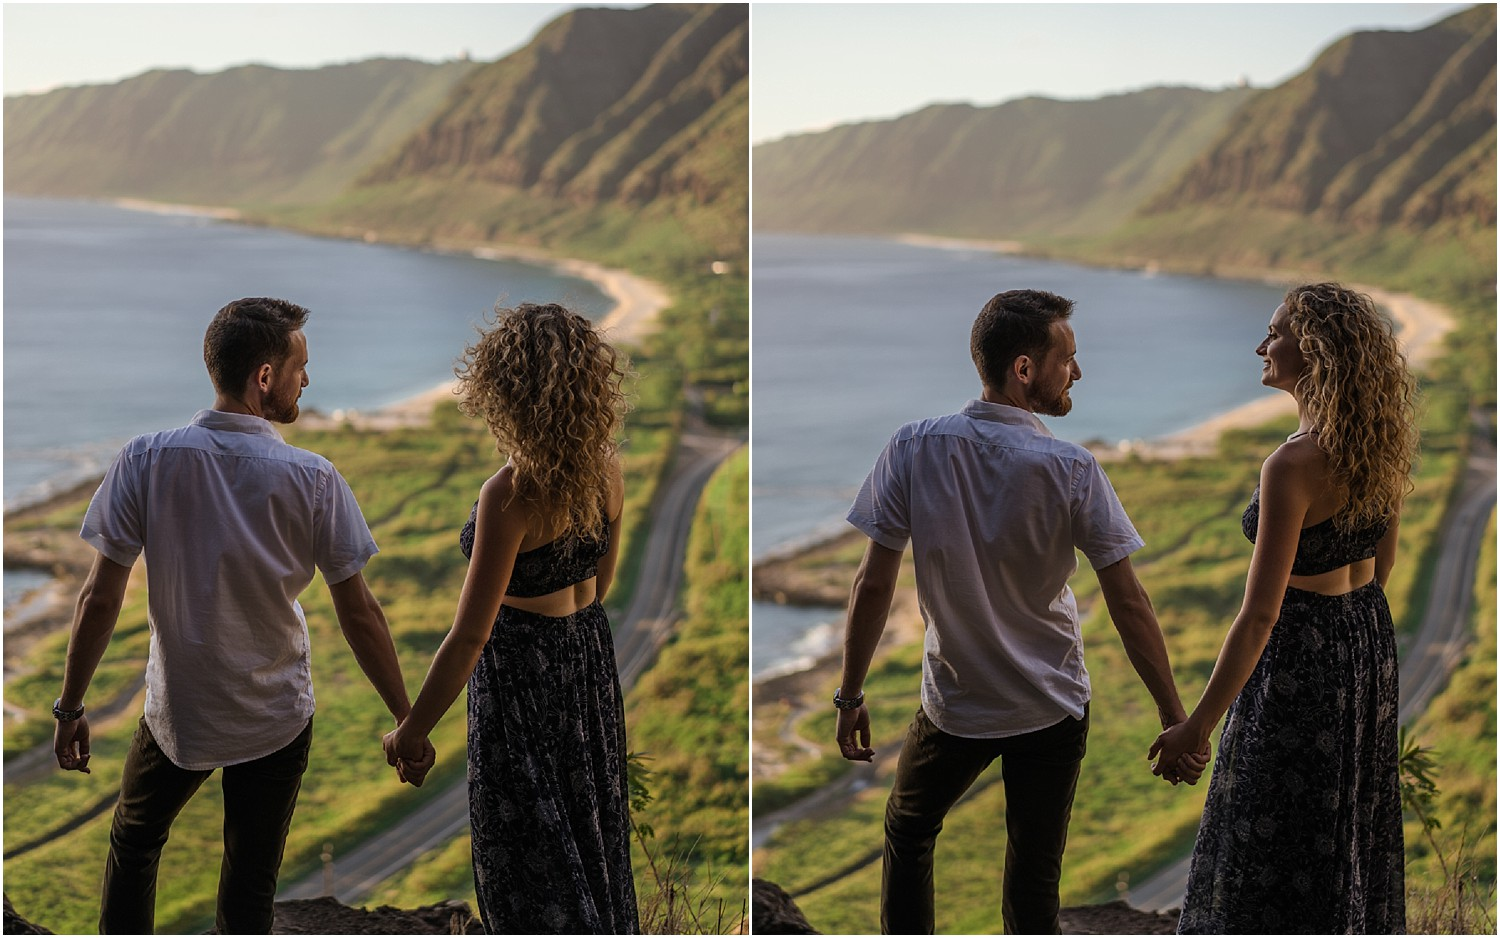 oahu-adventure-engagement-photography-session8.jpg